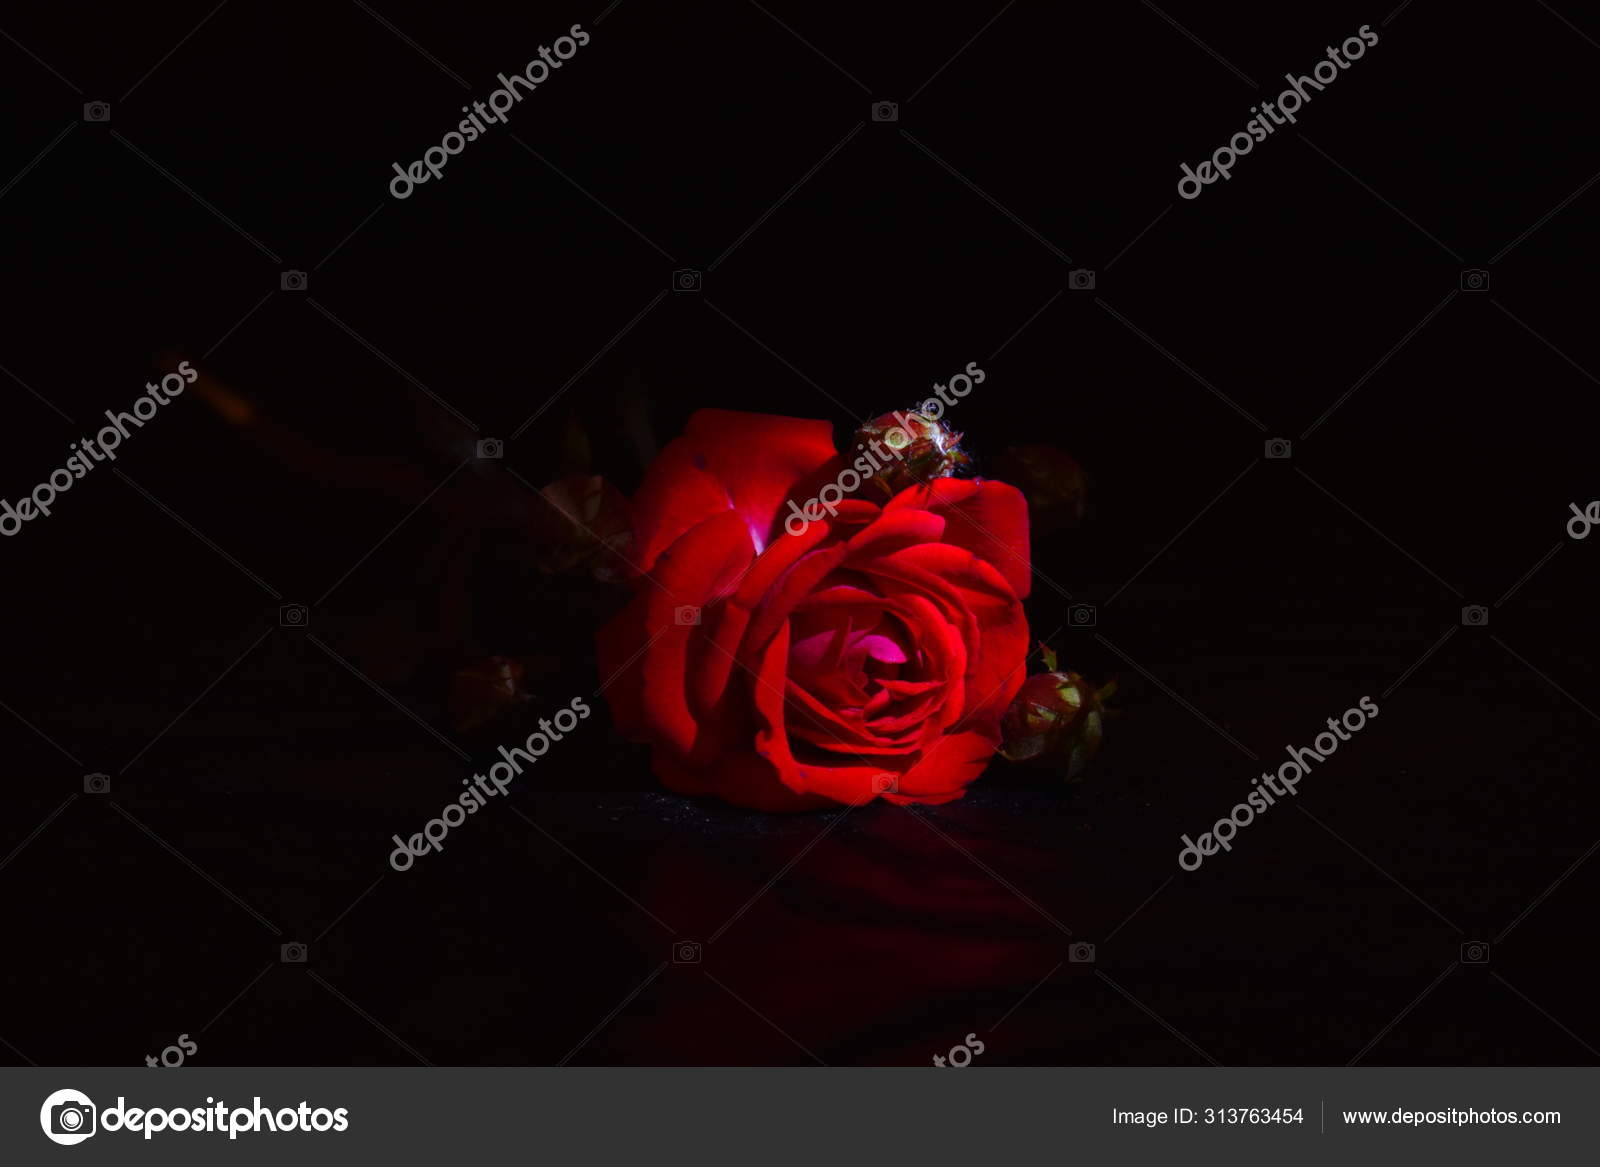 Red Rose Close Up On A Black Background Wallpaper Stock Photo C Vika200581 Mail Ru 313763454